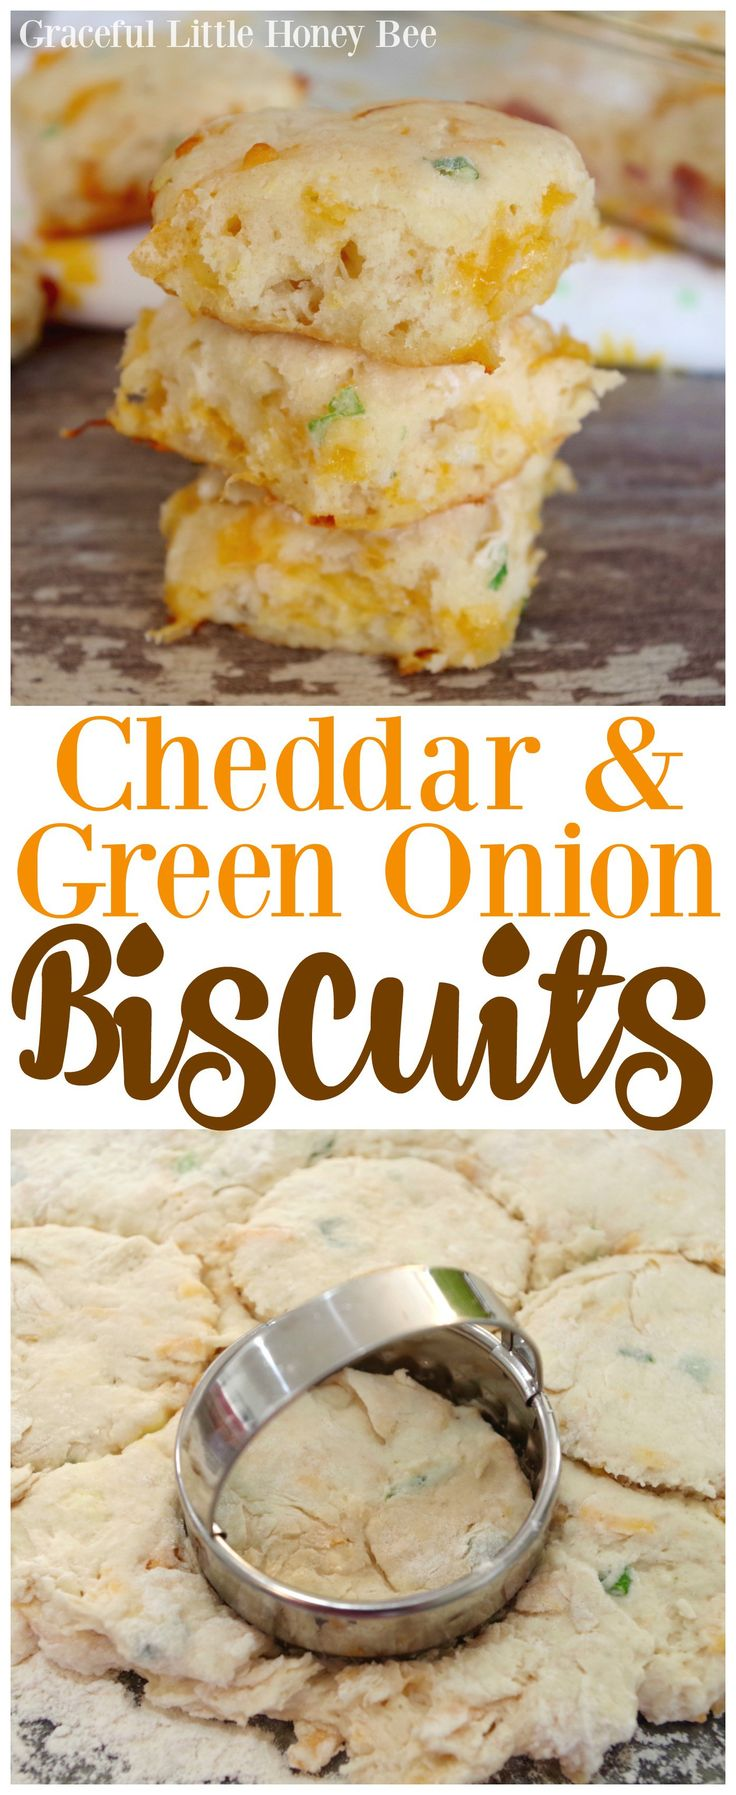 Try these super simple, yet DELICIOUS homemade Cheddar & Green Onion Biscuits on gracefullittlehoneybee.com